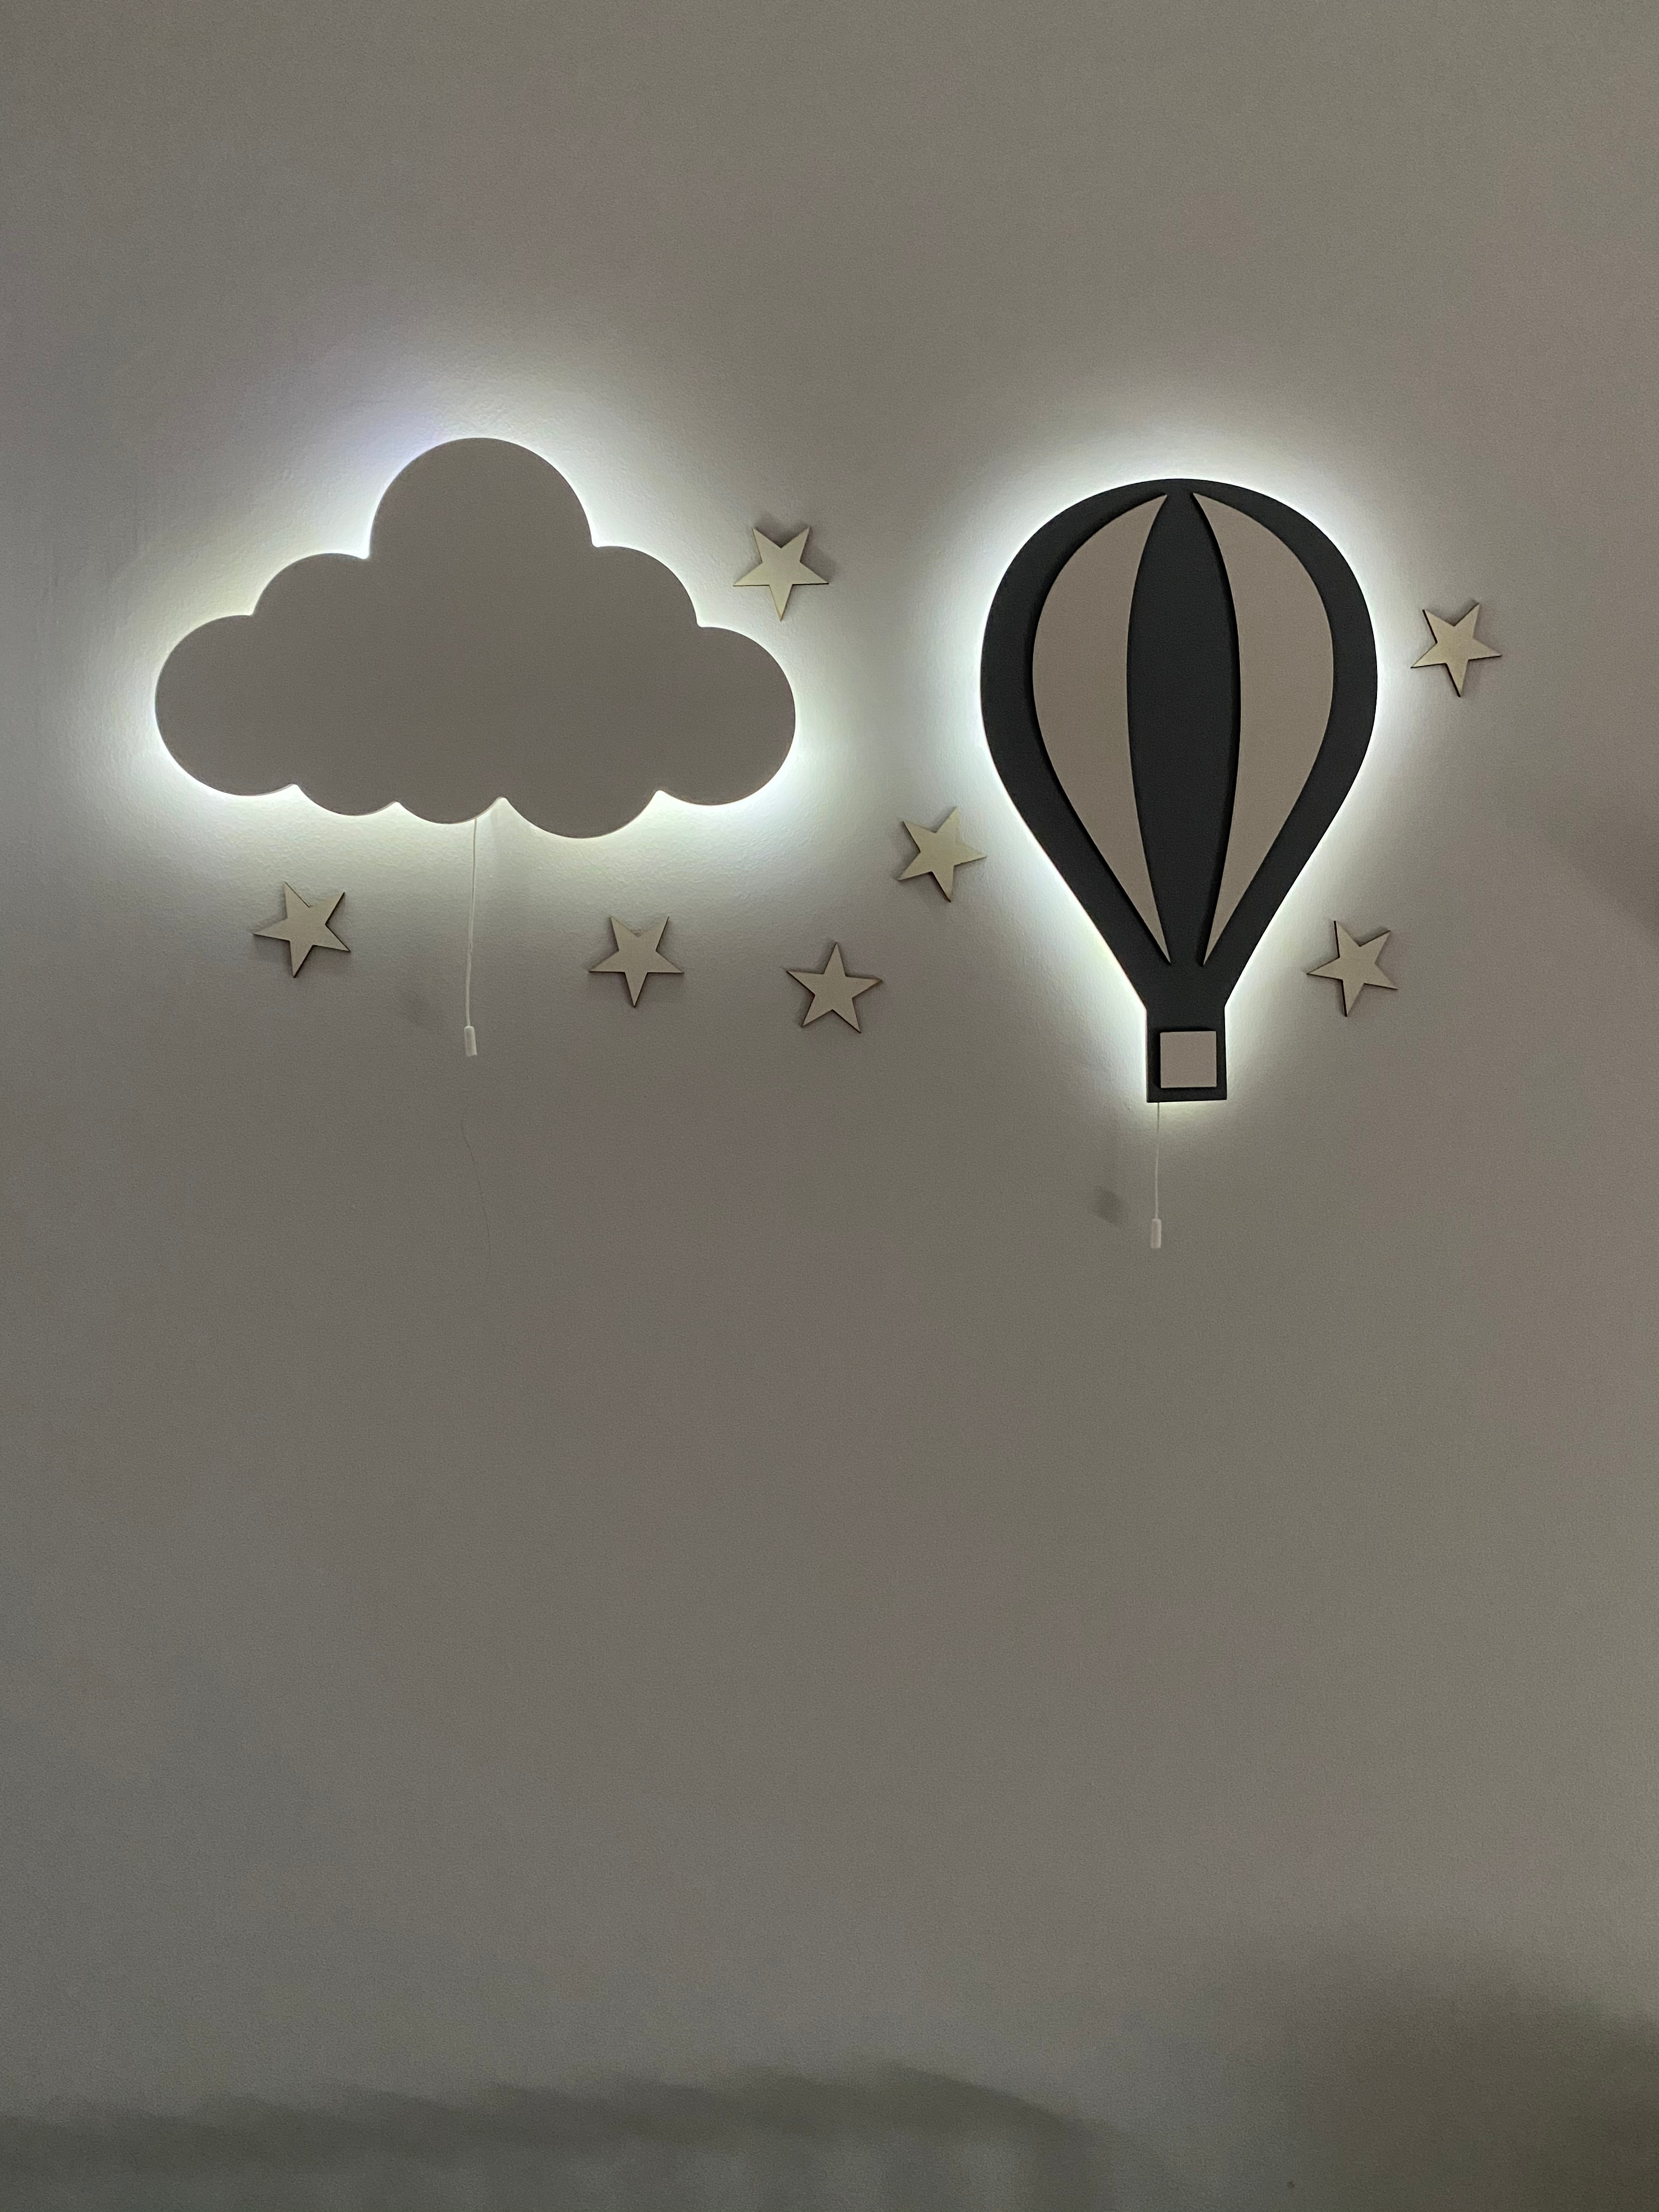 Set of 2- Nursery Cloud and Balloon Lamp, Cloud Lamp, Air Balloon Light, Wooden Led Light, Baby Night Lamp, My Childs Room Decor enlarge